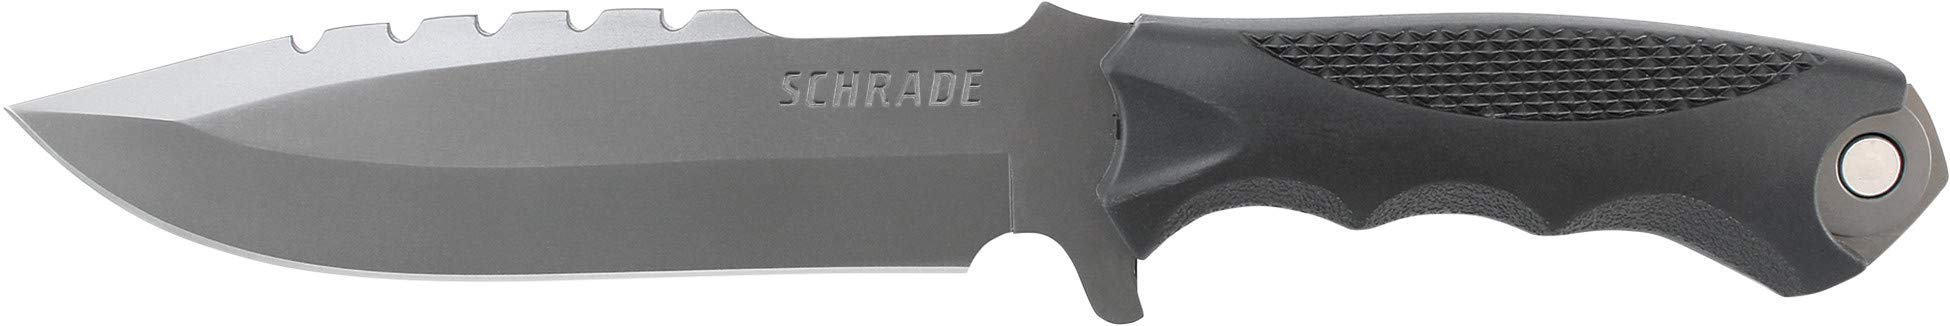 Schrade SCHF27 Extreme Survival Handle